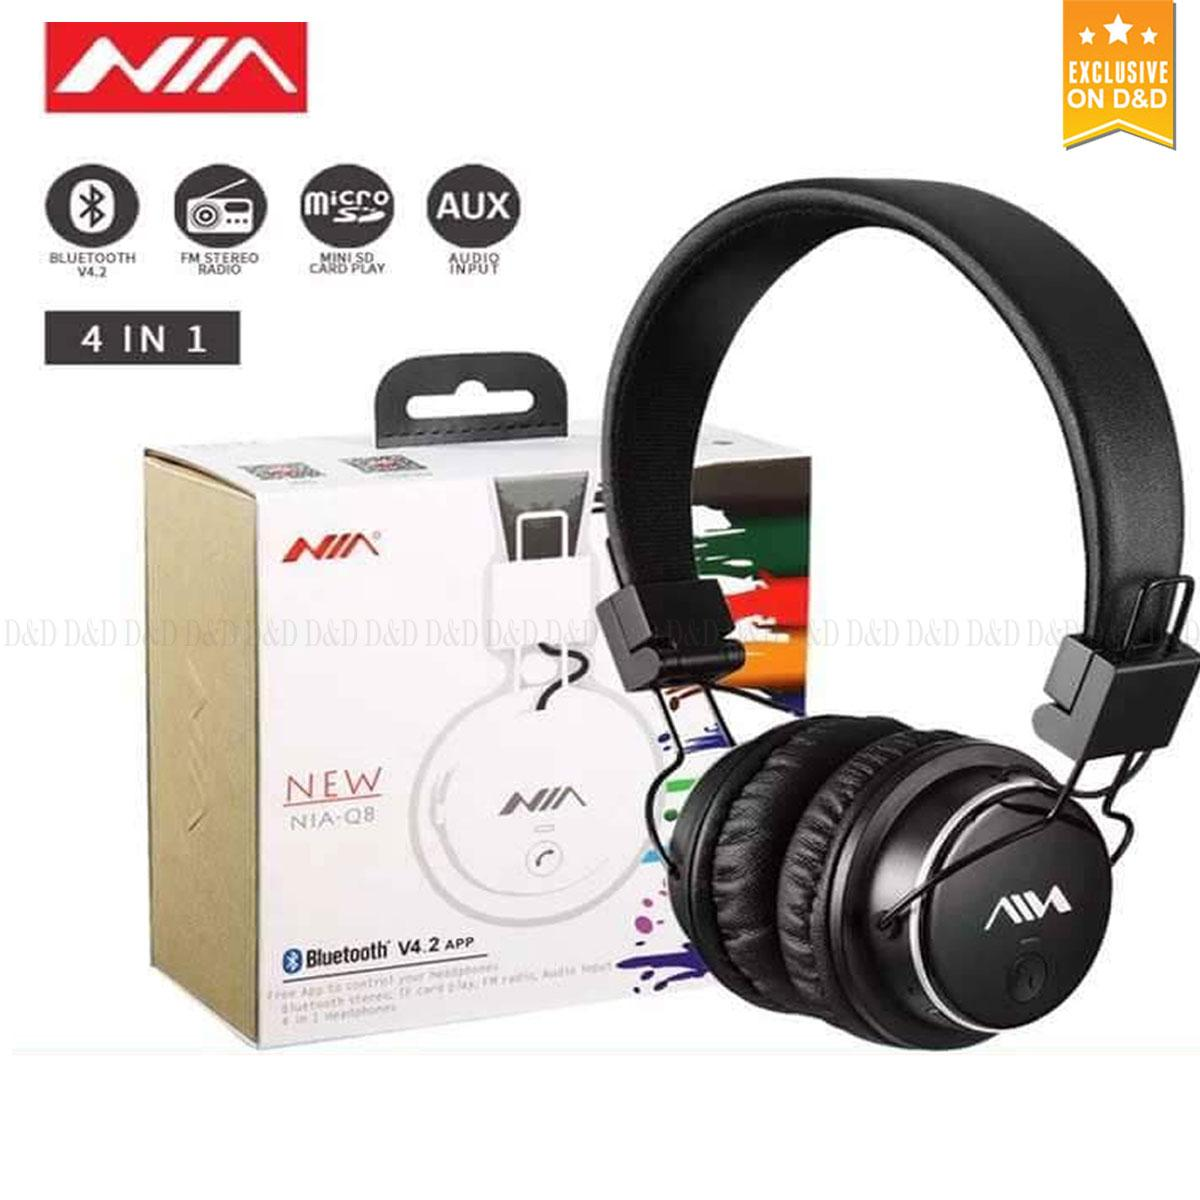 Speaker For Sale Bluetooth Prices Brands Specs In Amplifier With Dual Handlebar Mount Weatherproof Speakers W Fm Radio Nia Original Q8 Stereo Wireless Headphones Foldable Earphones Microphone Support Tf Card